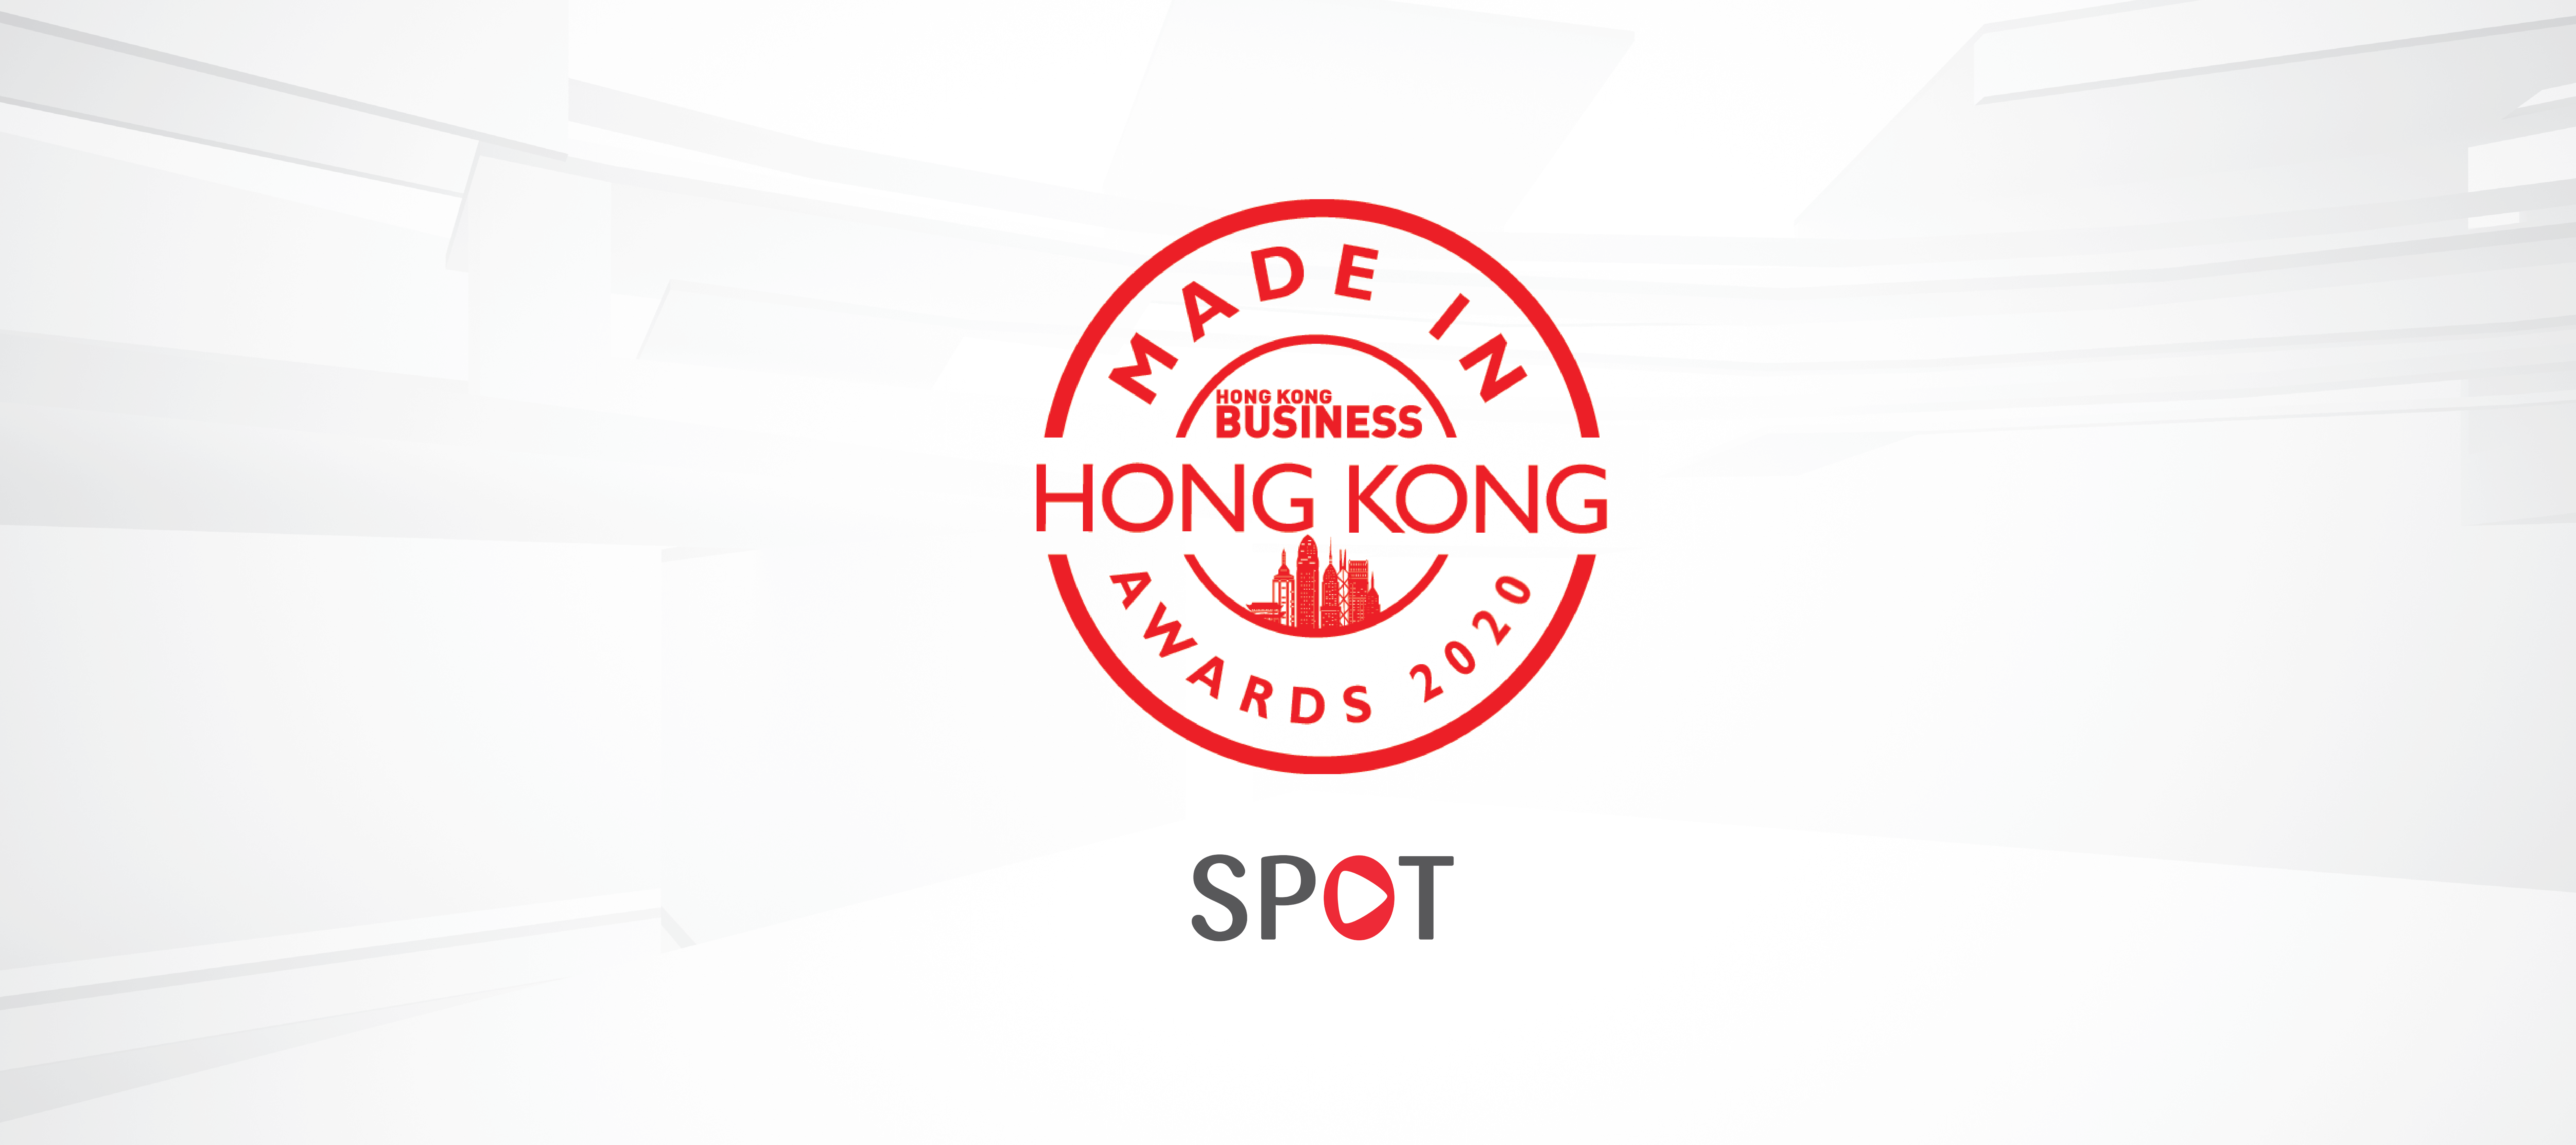 Tricor's E-meeting Solution Triumphs at Made in Hong Kong Awards